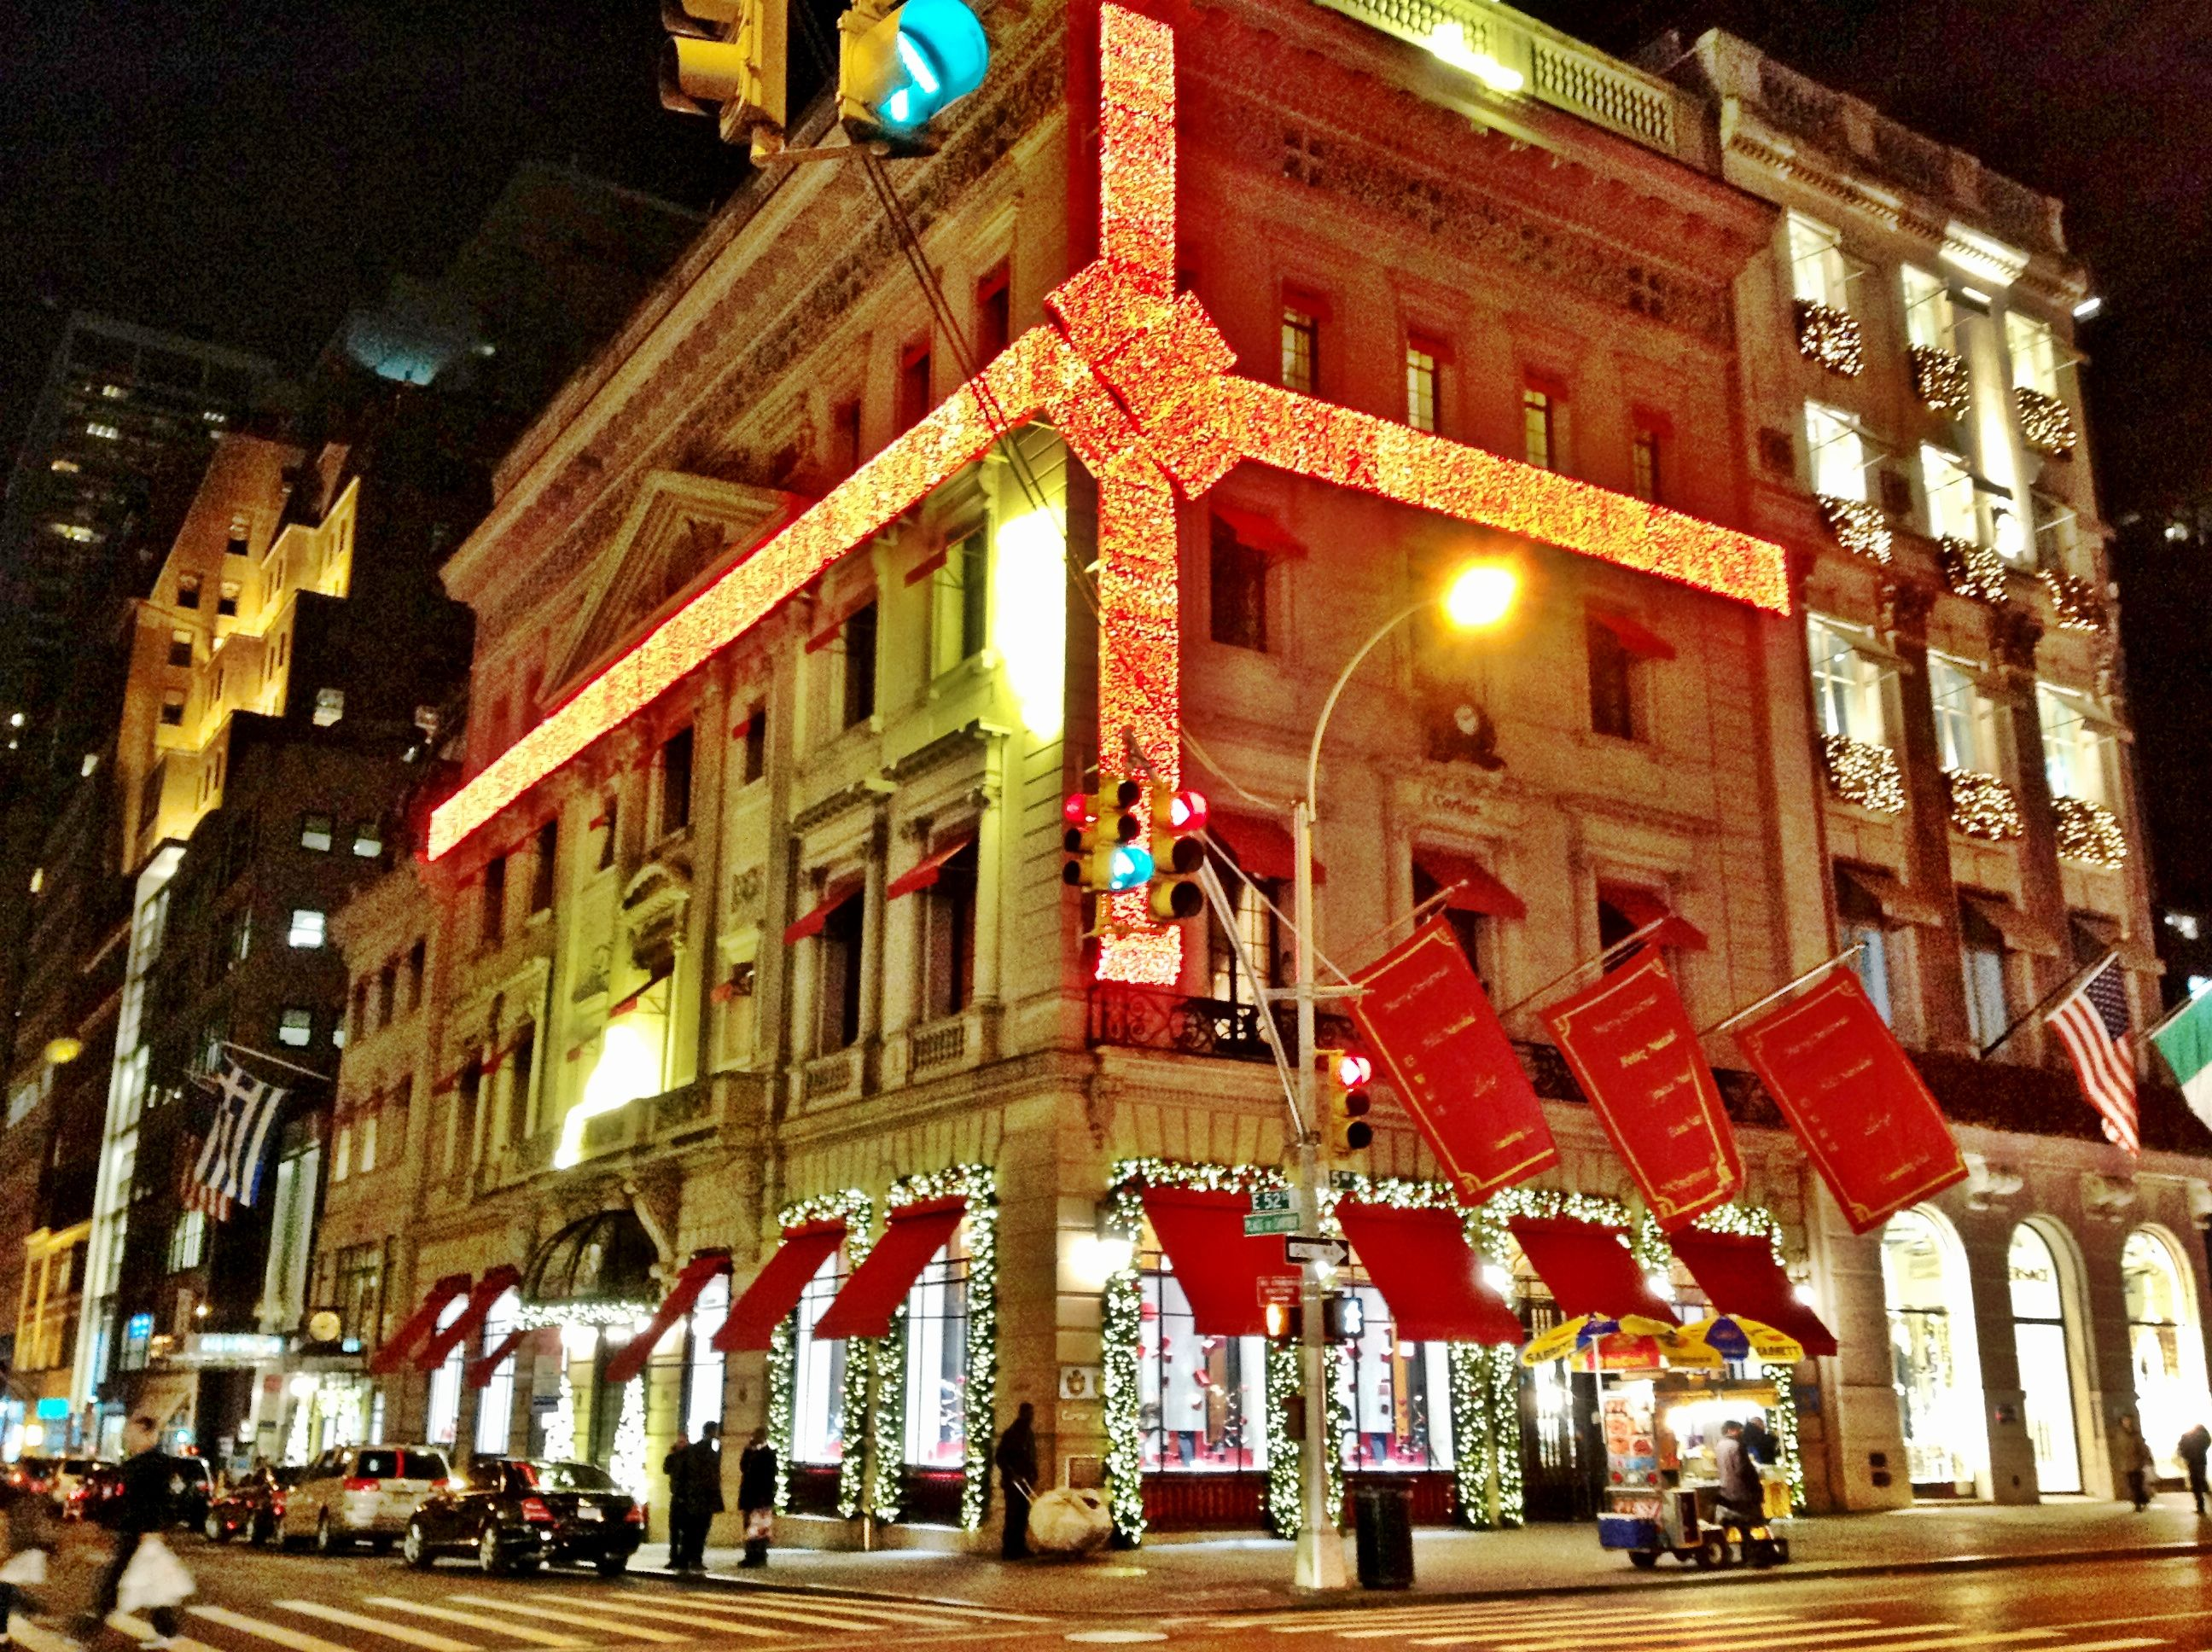 5th Ave. Christmas Time In NYC | New York City at Christmas ...